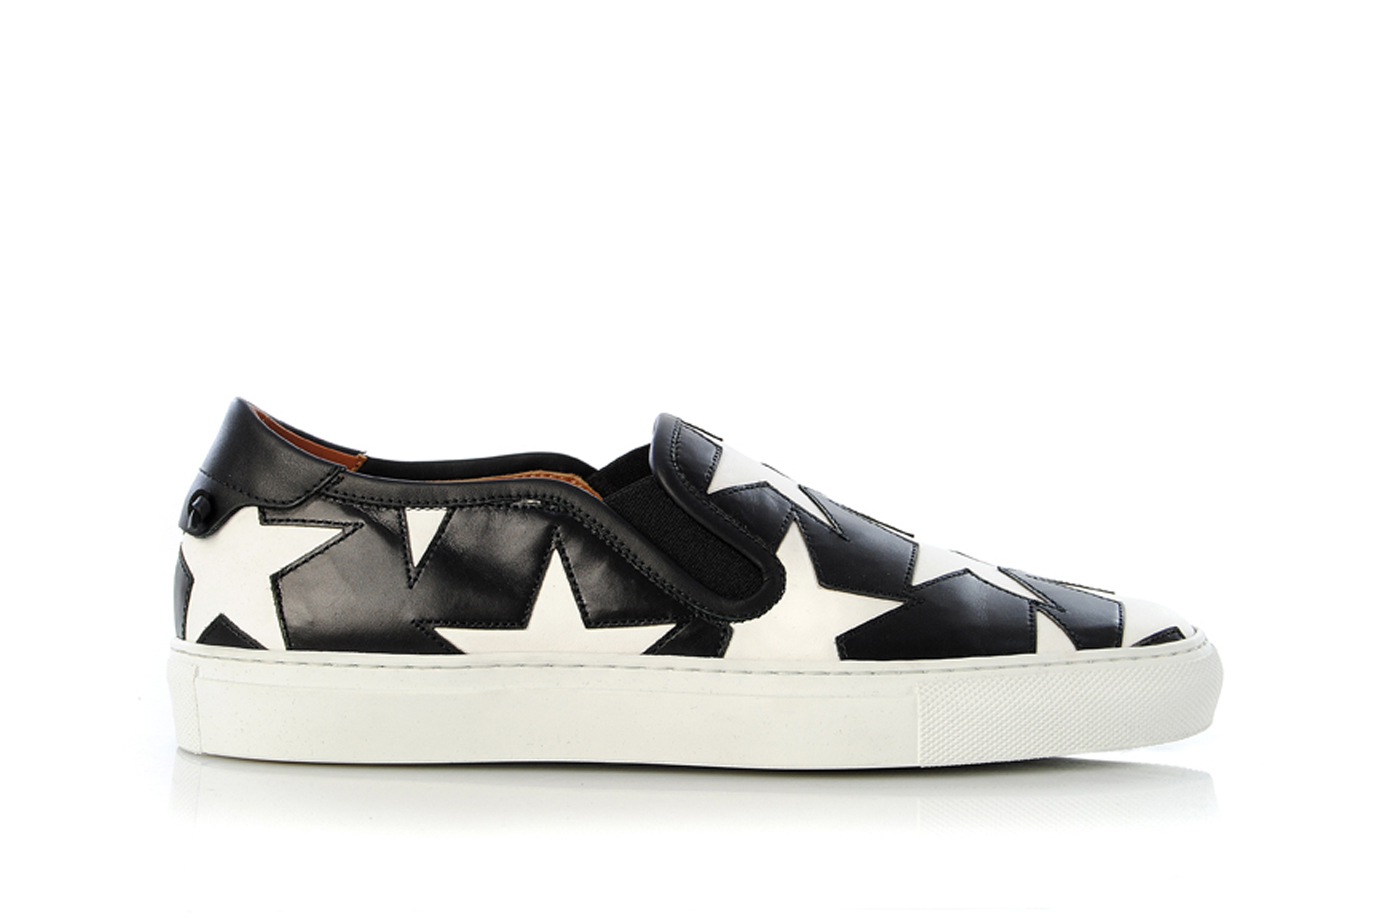 4a48ccfe7ec01 Details about Womens Shoes GIVENCHY Sneaker Skate BE08782101 Slip-On White  Stars Black Leather